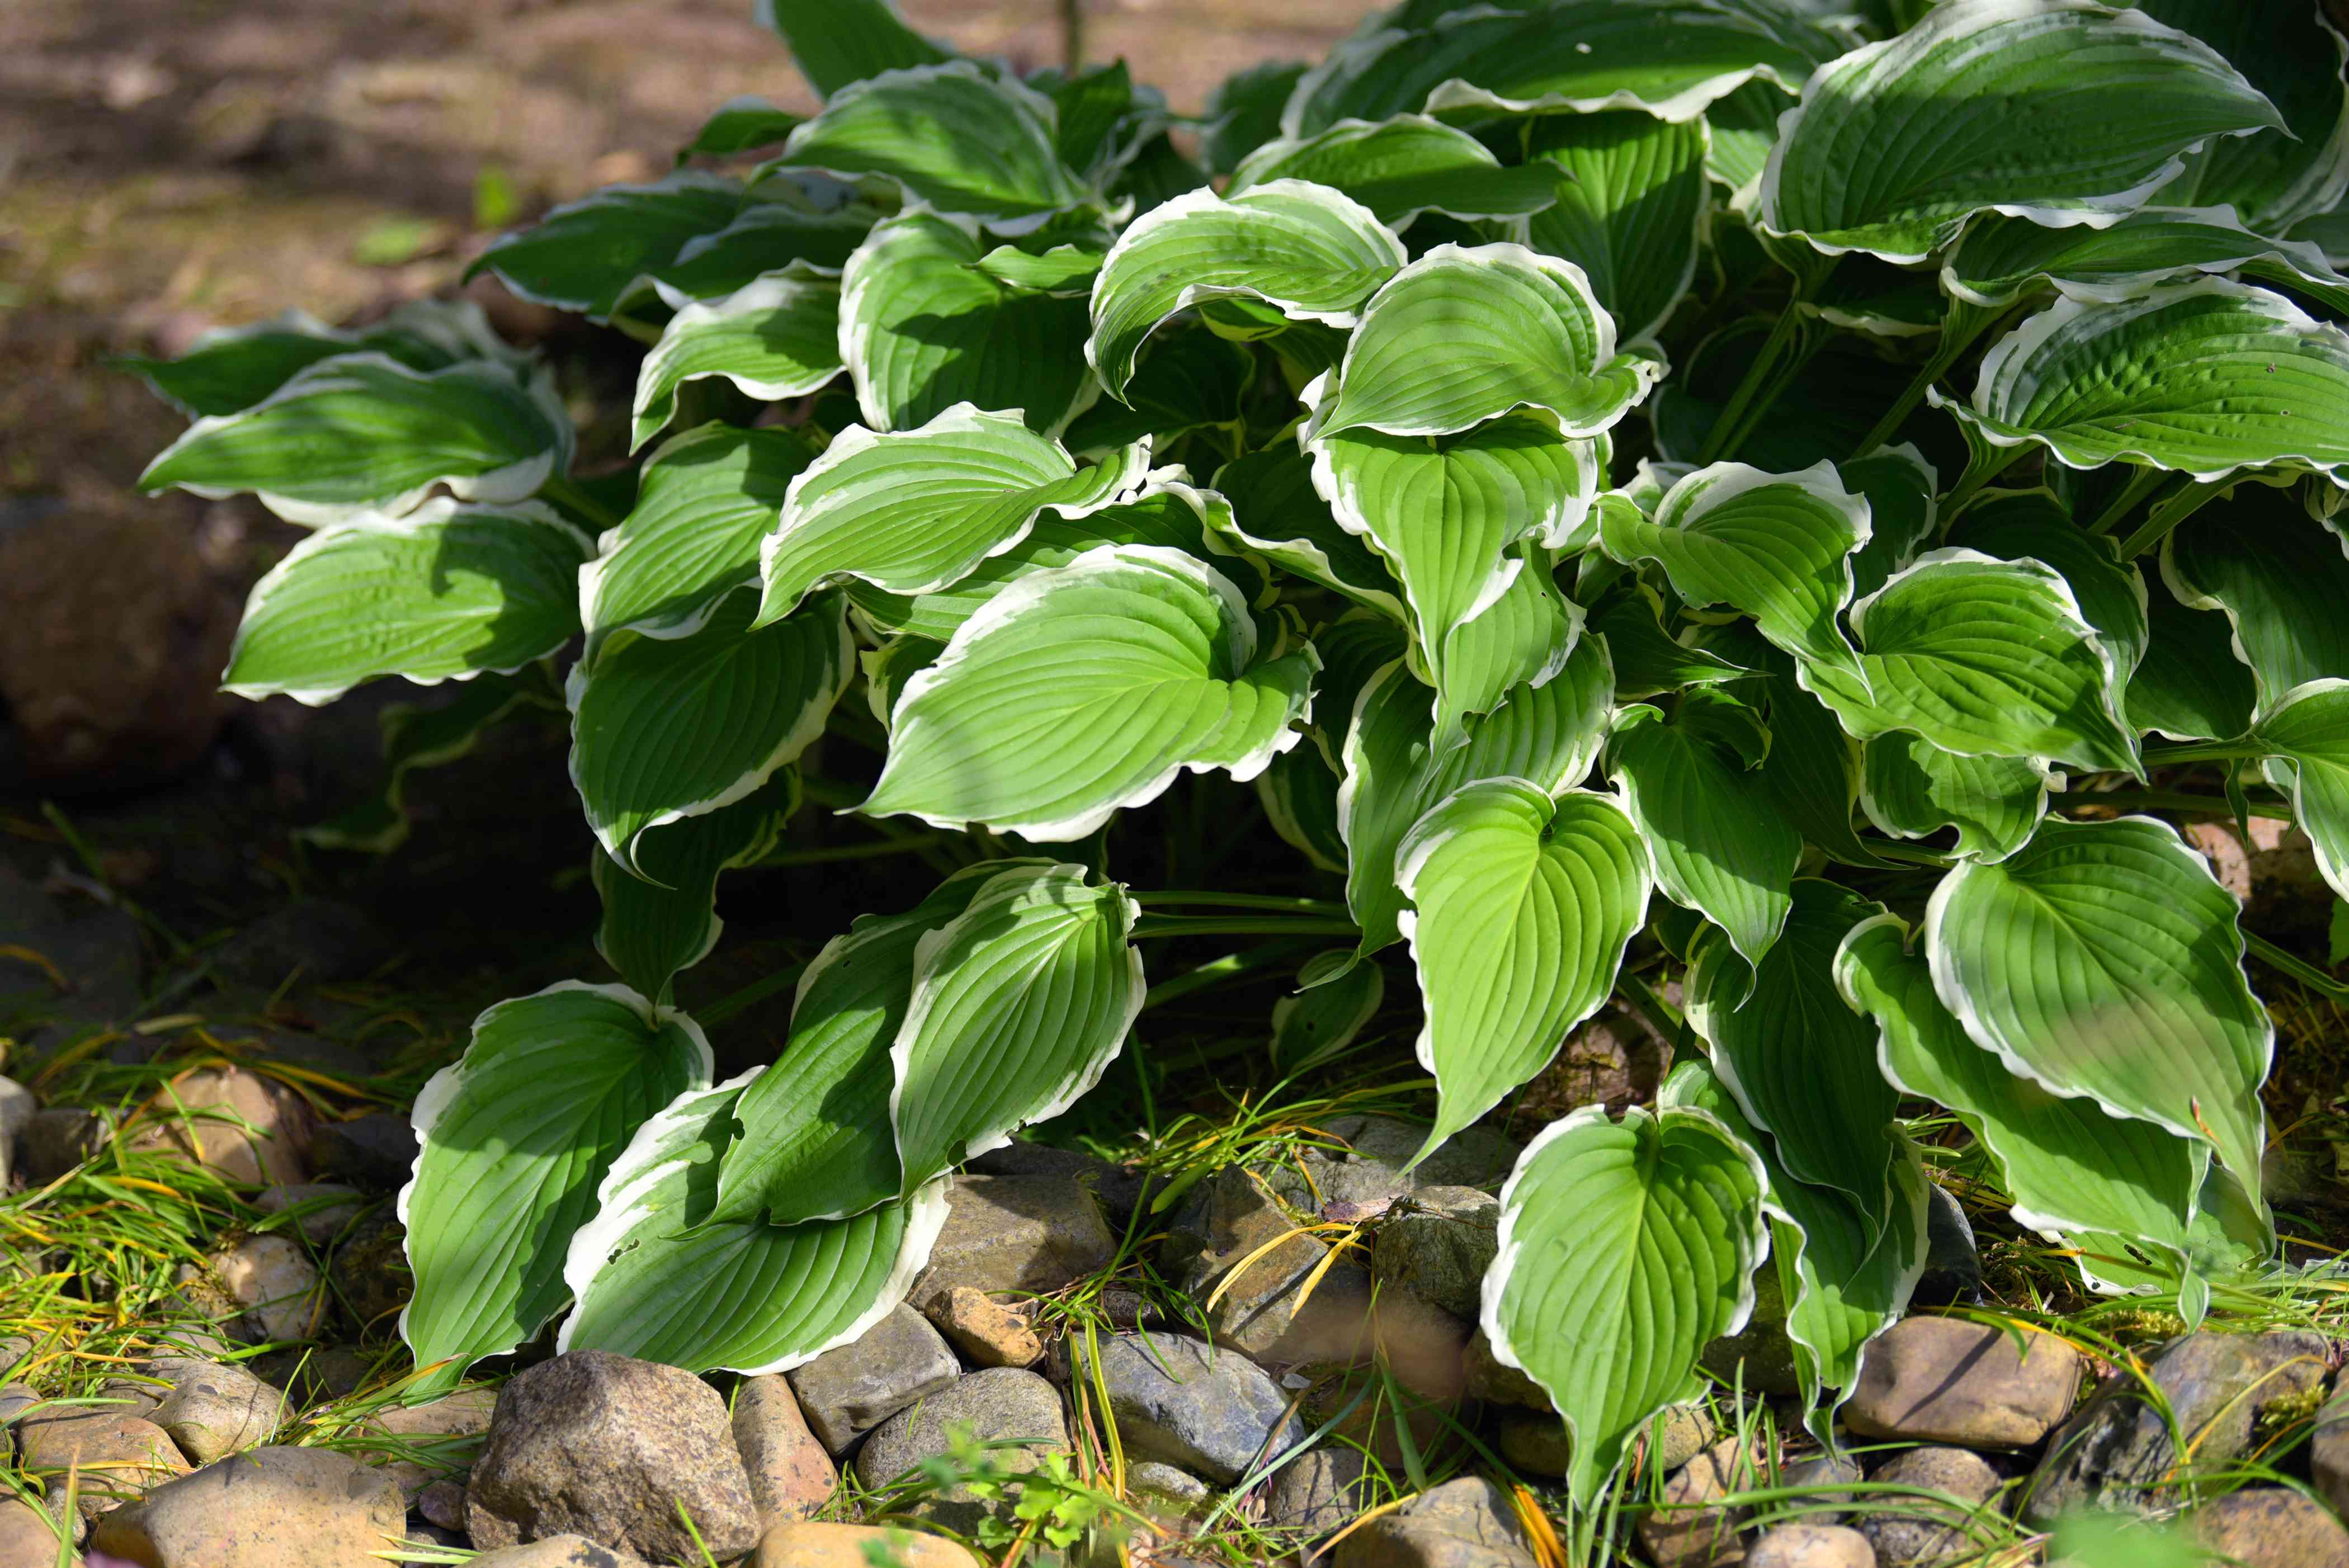 Hosta plant with variegated white and green leaves near rocks